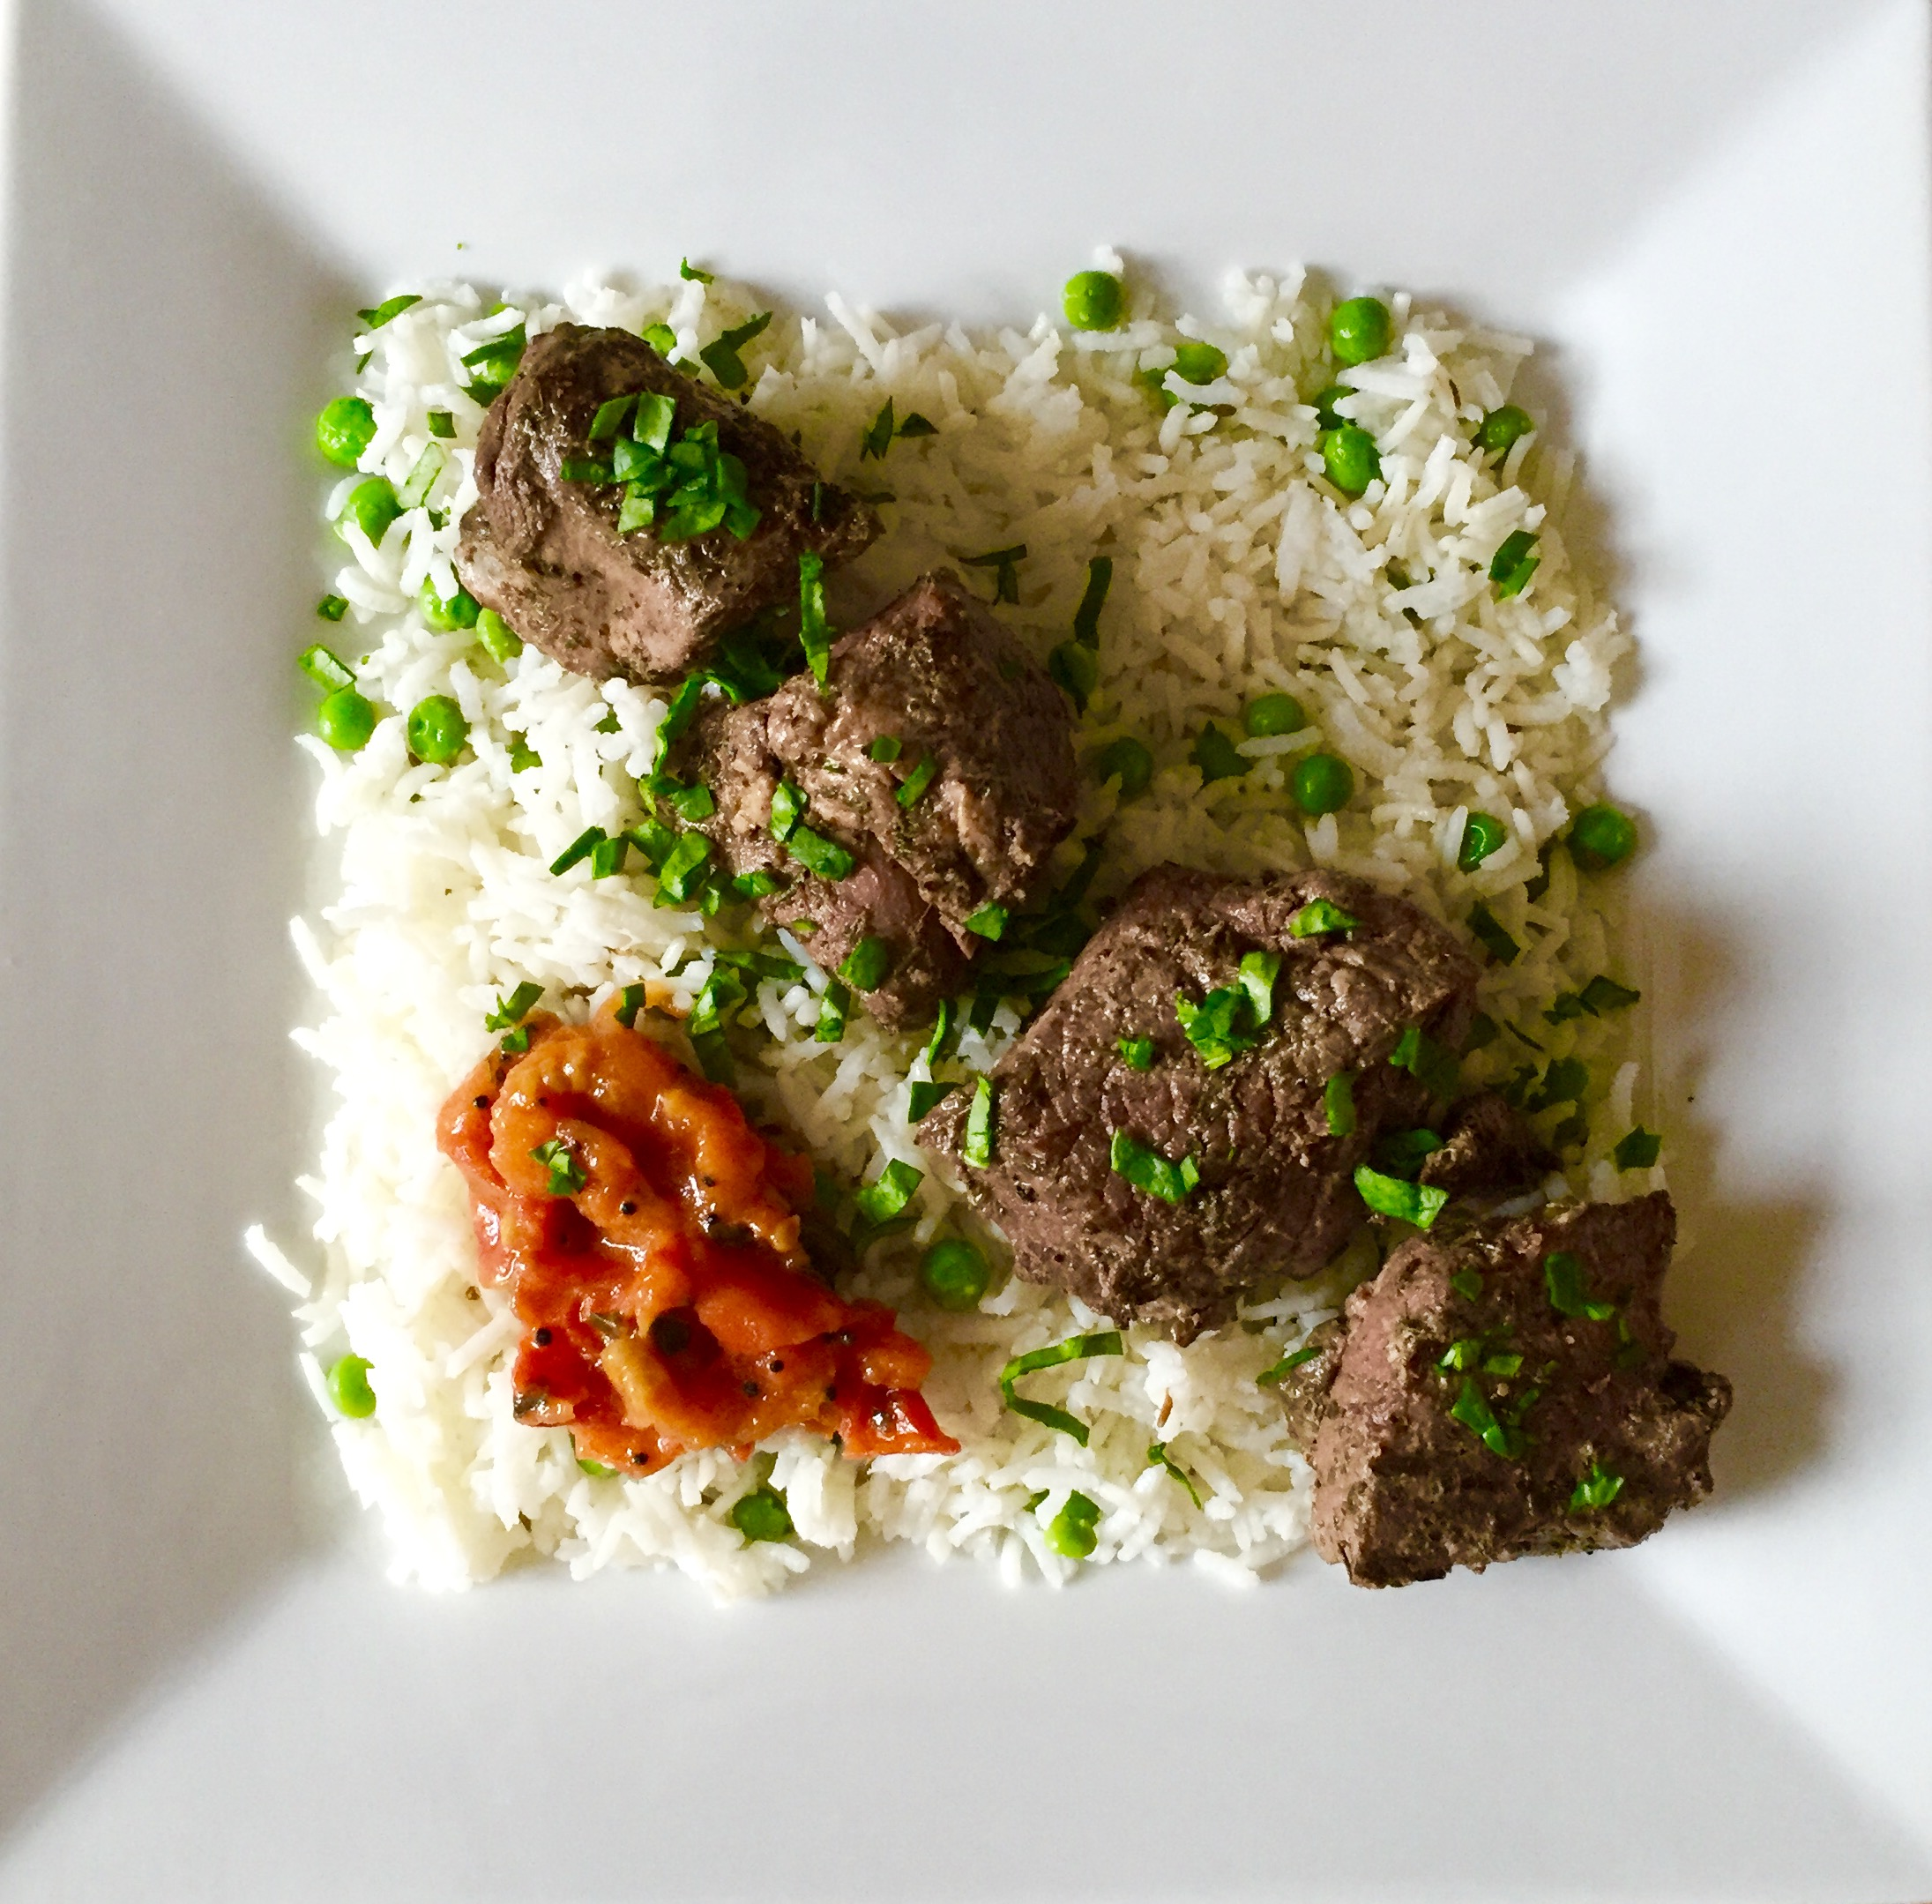 Summer Supper: Grilled Lamb Kebabs with Tomato Chutney Over Basmati Rice